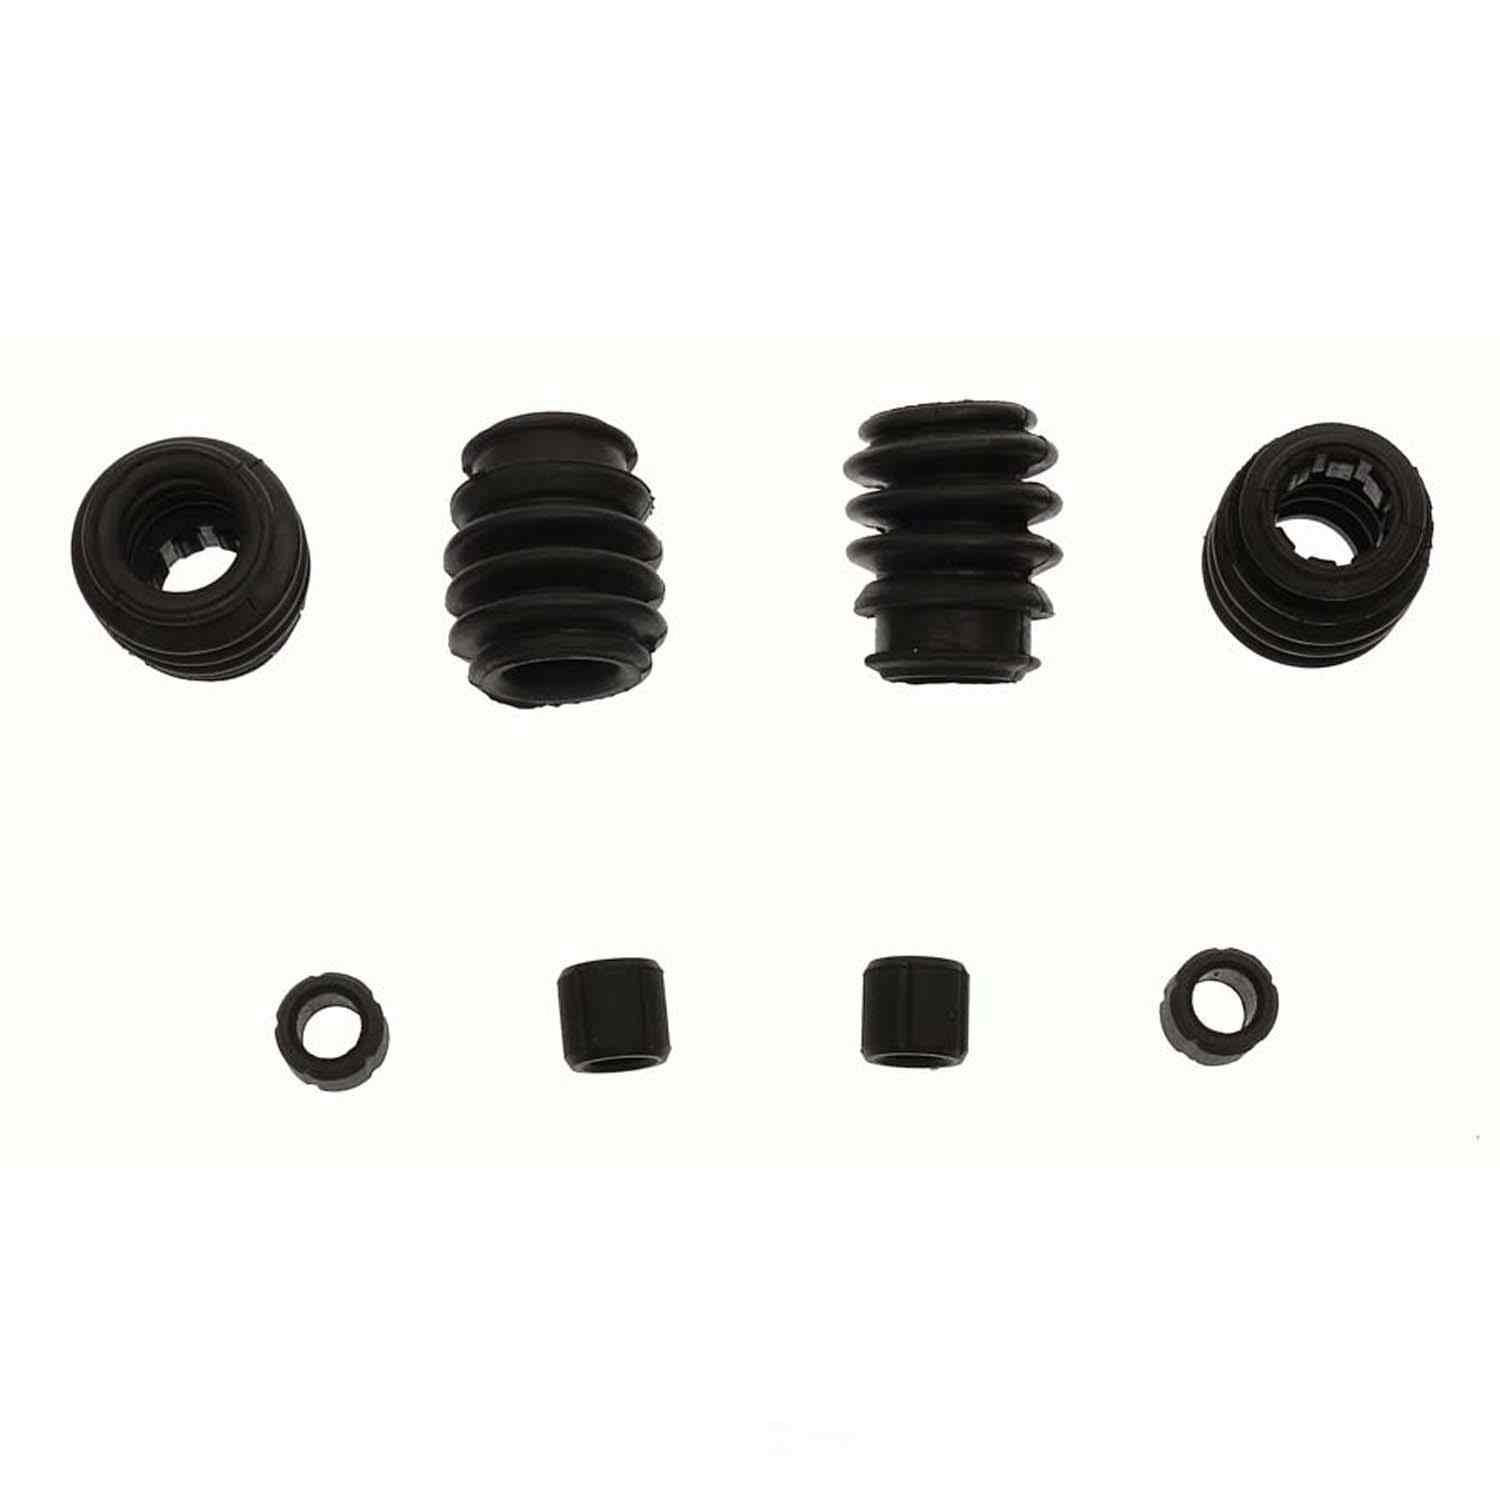 CARLSON QUALITY BRAKE PARTS - Disc Brake Caliper Guide Pin Boot Kit (Front) - CRL 16217